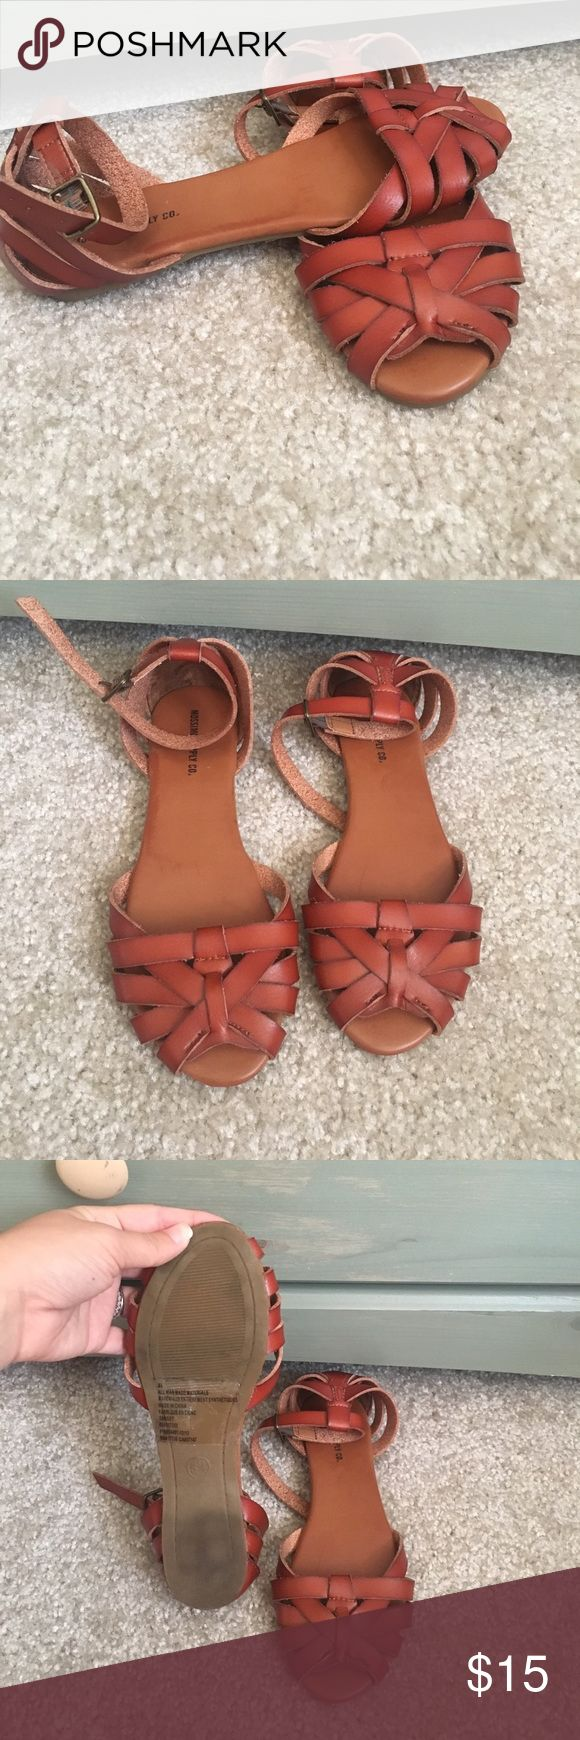 LIKE NEW WORN 1x Sandals Deer brown leather sandals Mossimo Supply Co Shoes Sandals